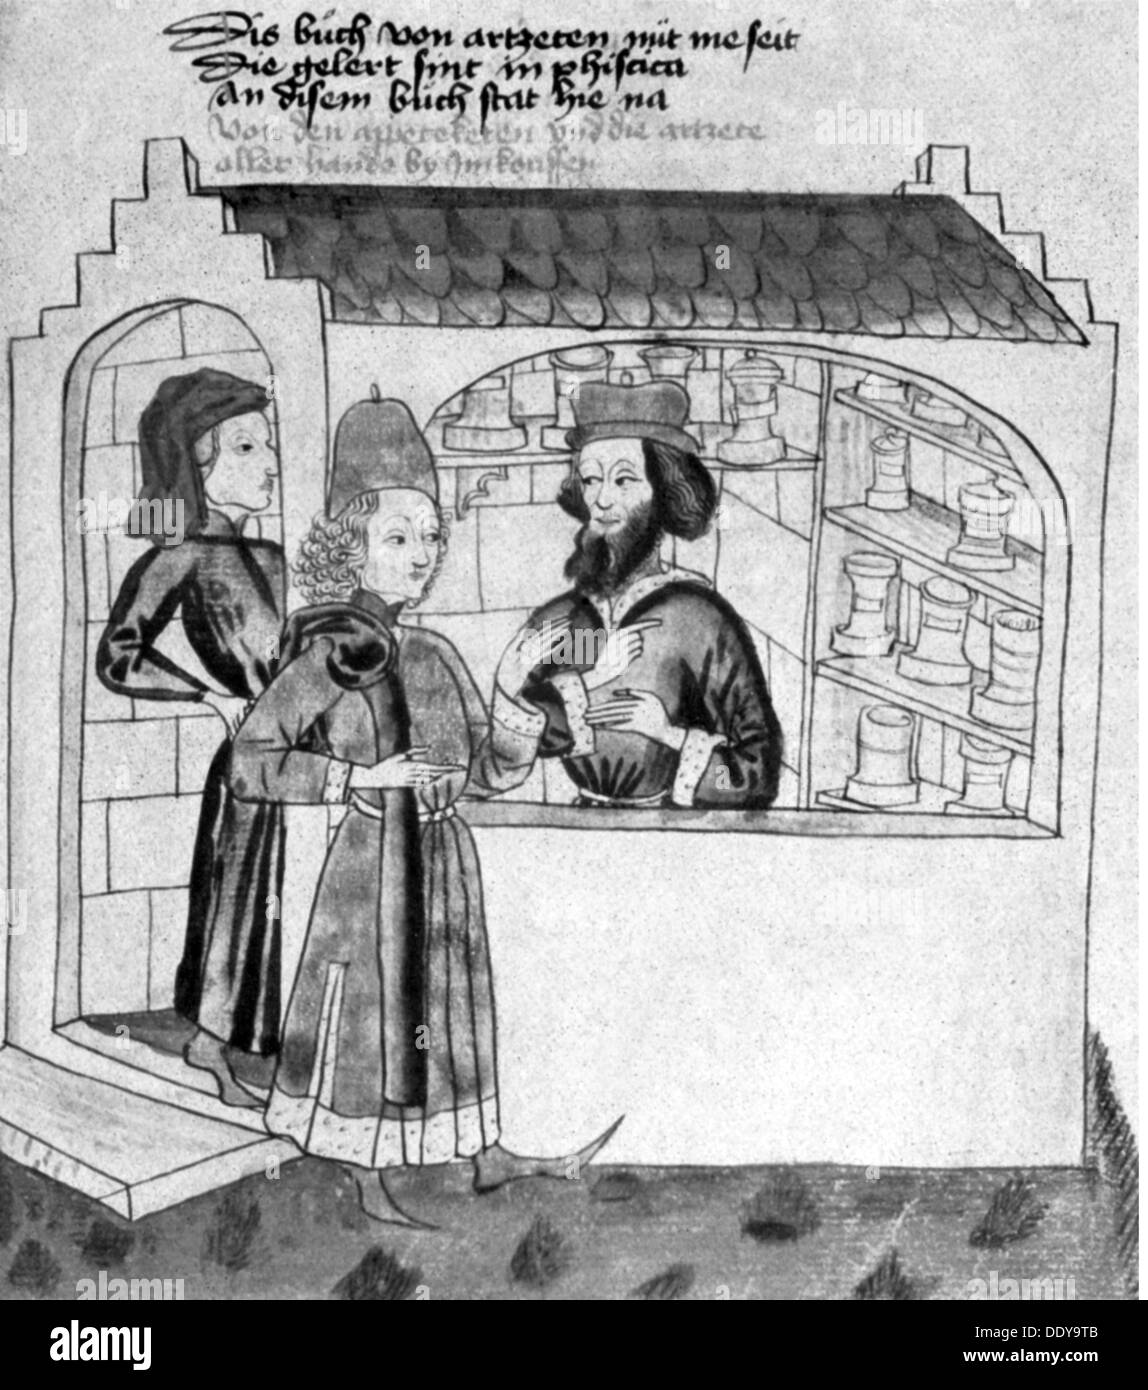 medicine, pharmacy, pharmacy, medieval German pharmacy, after coloured drawing, 14th / 15th century, 14th century, 15th century, Middle Ages, graphic, graphics, occupation, occupations, apothecary, dispensing chemist, druggist, apothecaries, dispensing chemists, druggists, half length, standing, customer, customers, sale, sales, selling, sell, buying, purchase, buy, purchasing, building, buildings, script, scripts, manuscript, handwriting, handwritings, pharmaceutics, pharmacology, pharmacist, pharmacists, medicine, medicines, pharmacy, pharmacies, drugstore, c, Additional-Rights-Clearences-NA - Stock Image